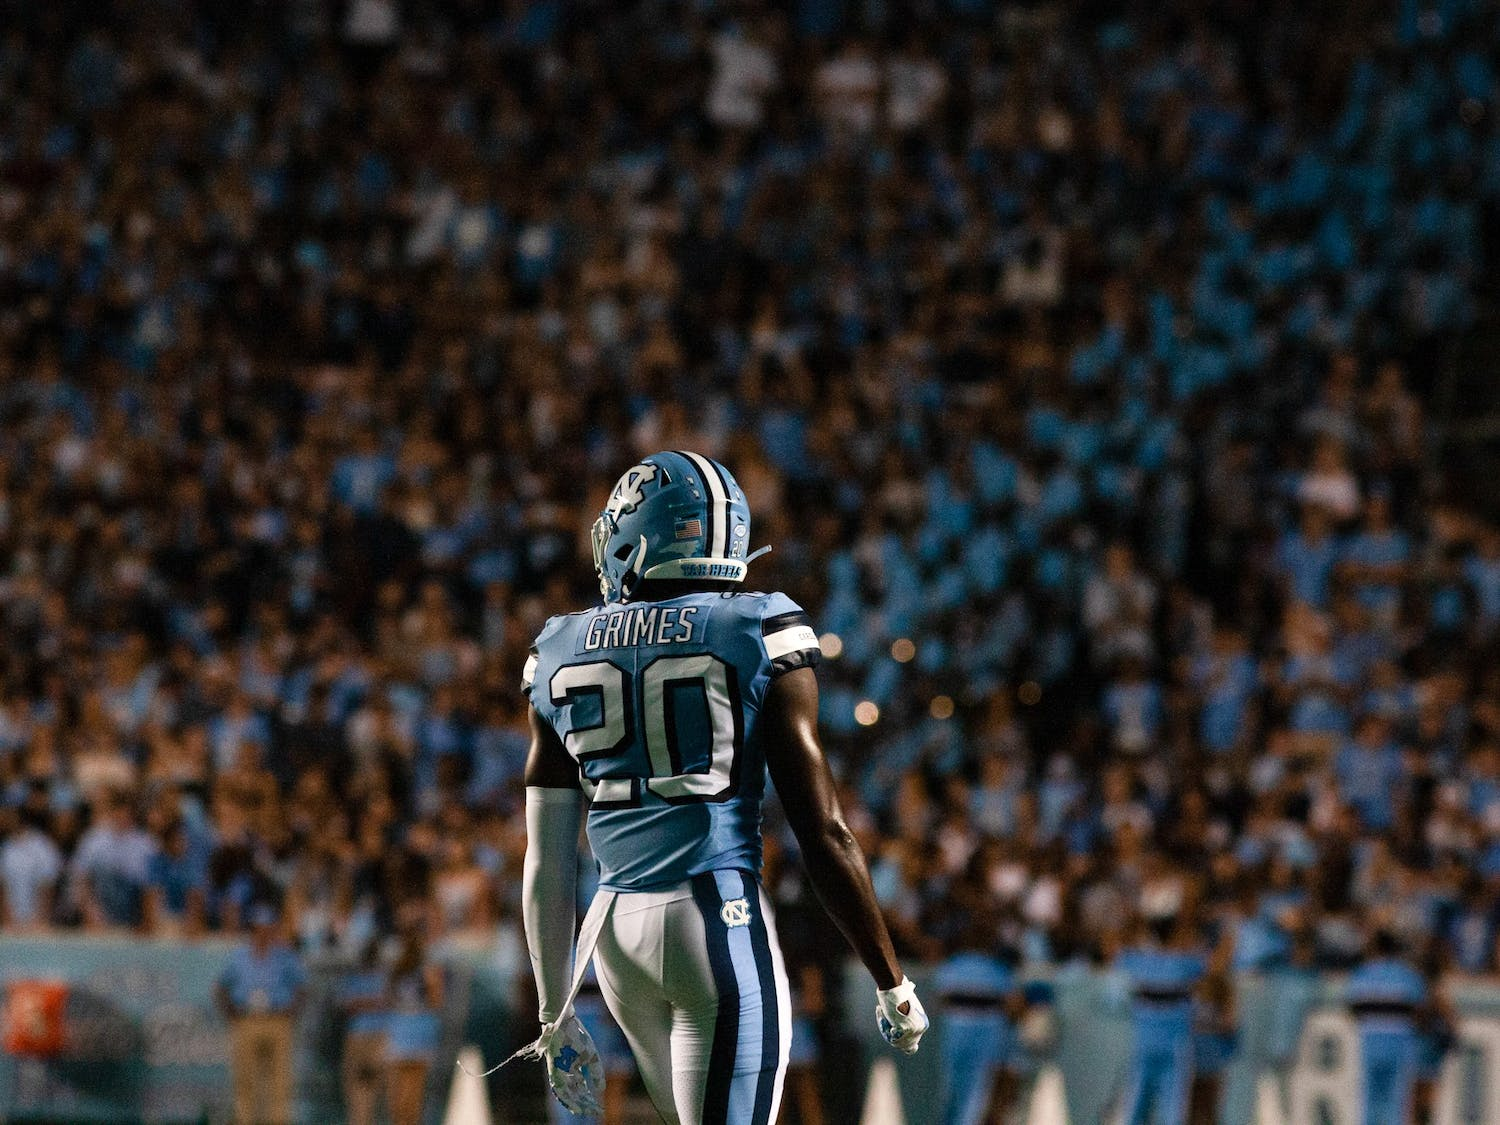 UNC sophomore defensive back Tony Grimes (20) stares into the crowd at Saturday's home game at Kenan Stadium. UNC defeated the Cavaliers 59-39, their second win of the season.